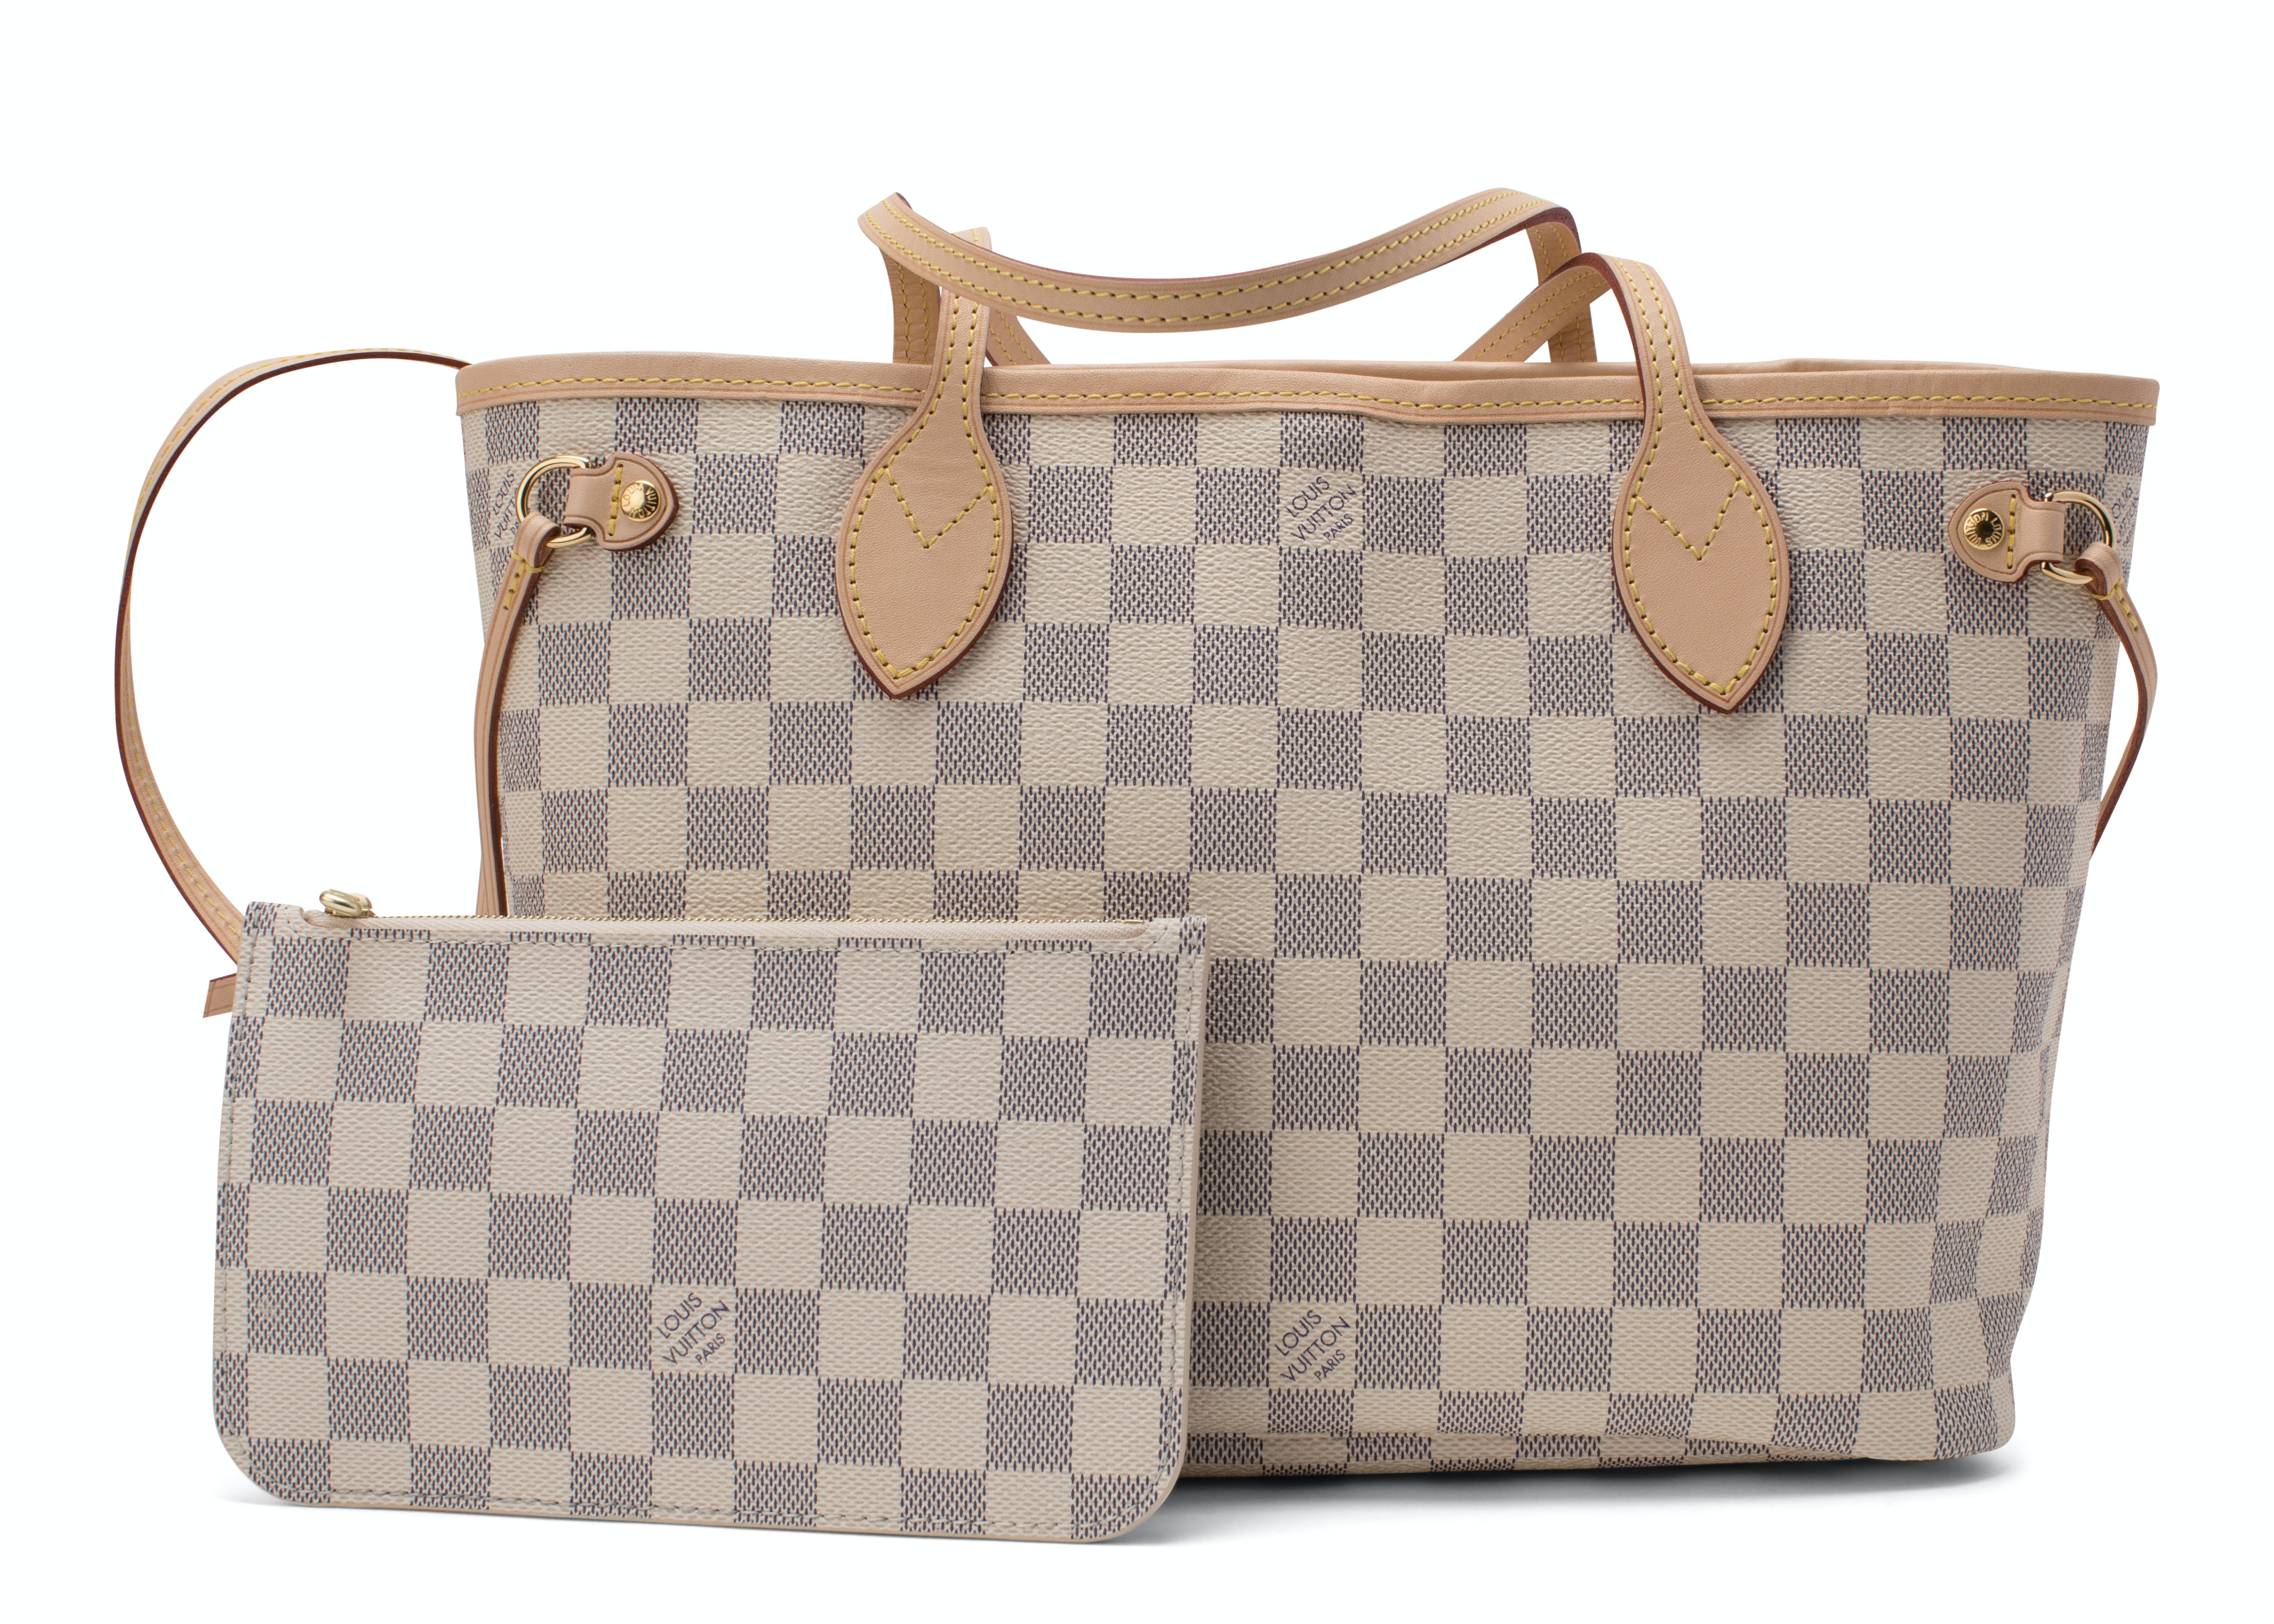 Louis Vuitton Neverfull Nm Damier Azur PM (With Pouch) Ivorie Grey